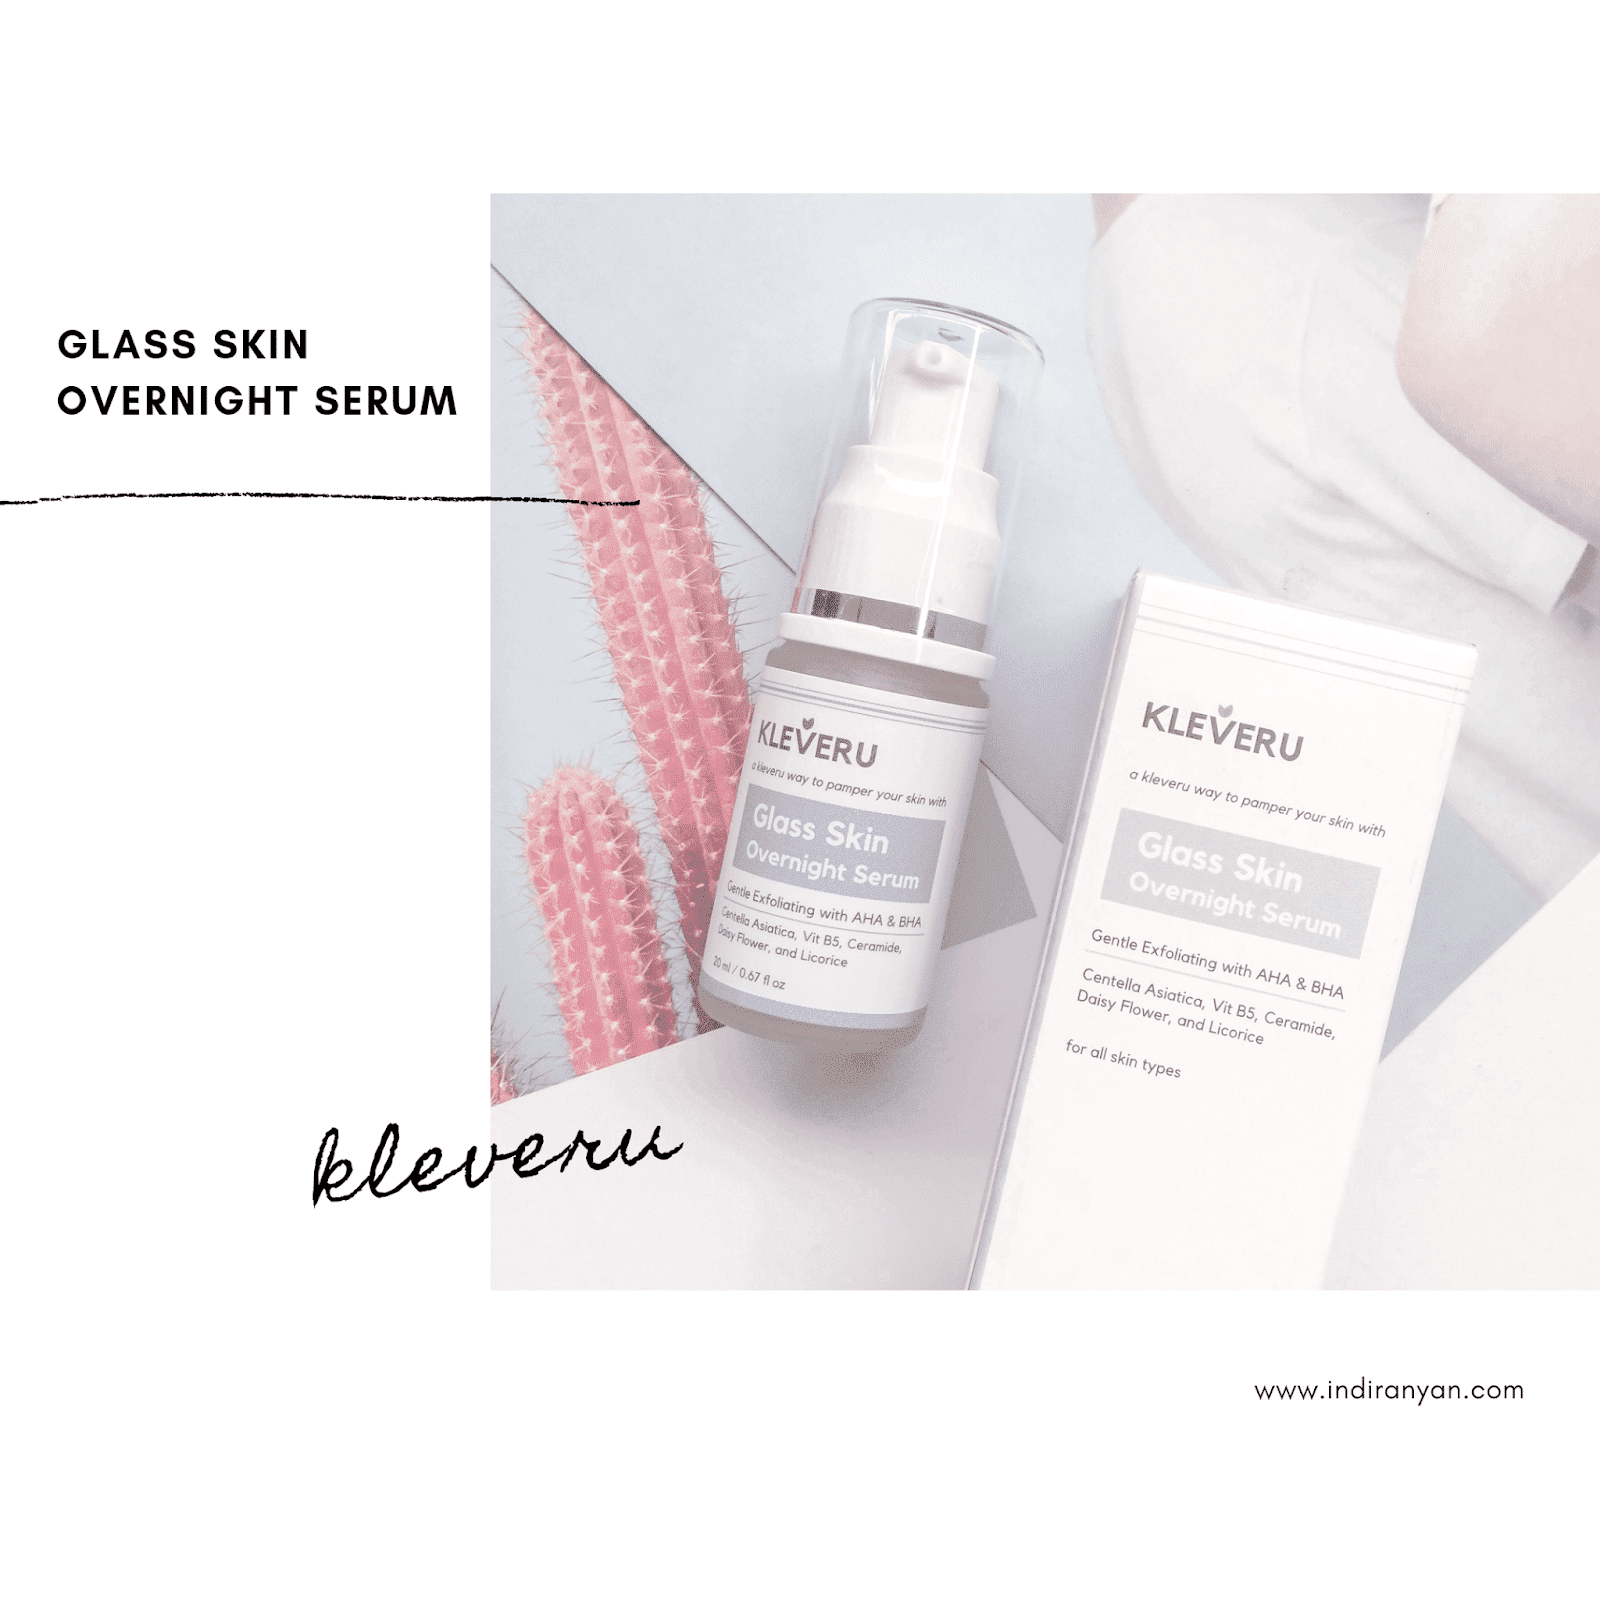 kleveru-glass-skin-overnight-serum